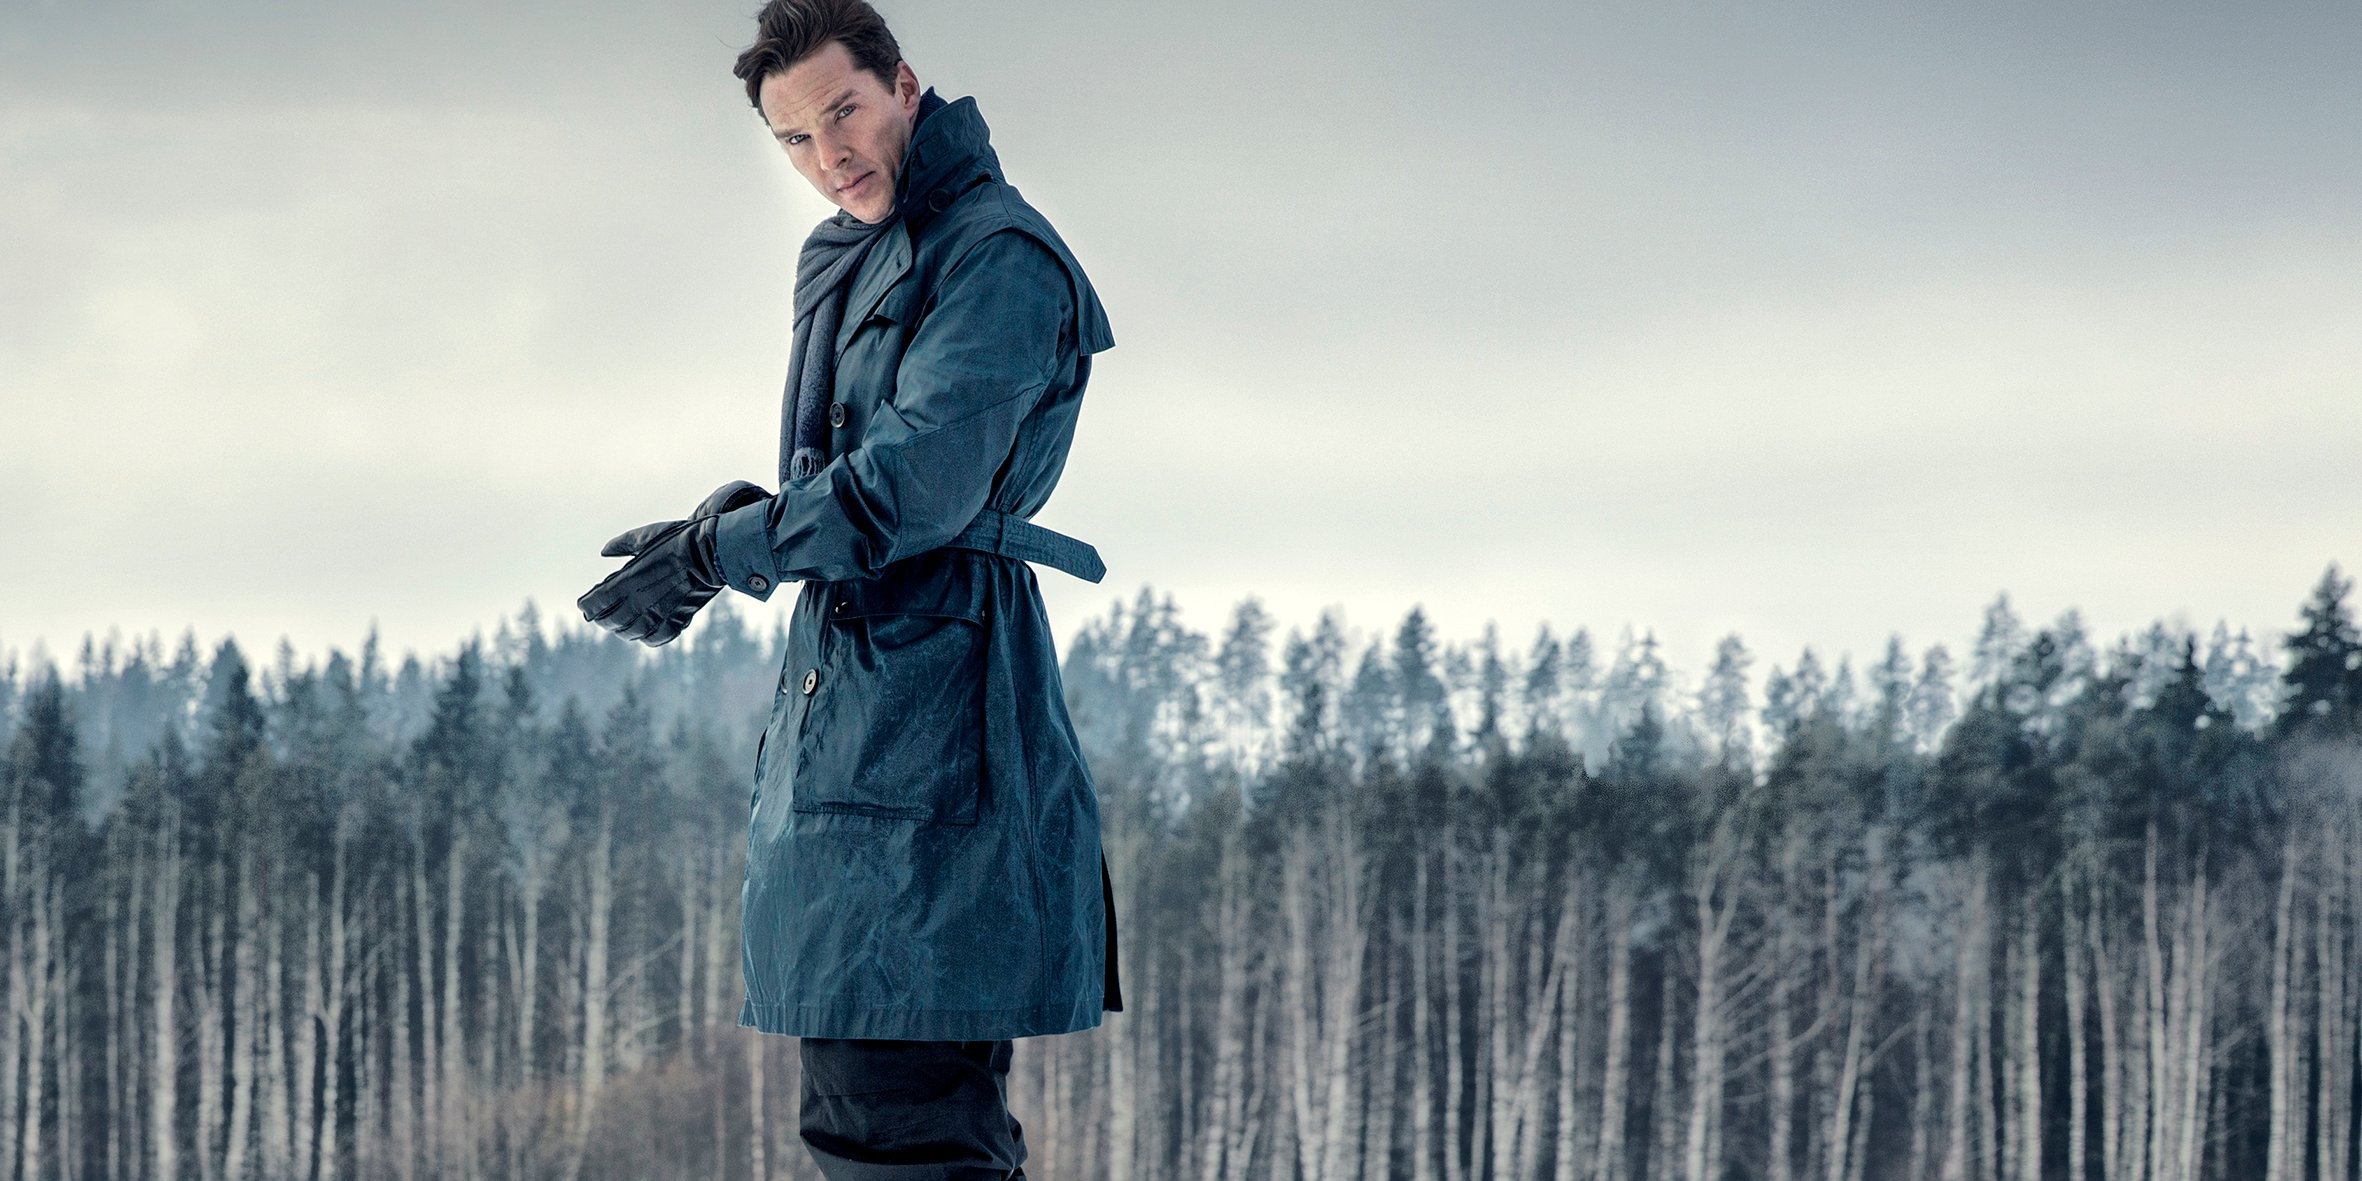 Benedict Cumberbatch Wallpapers High Resolution and Quality Download